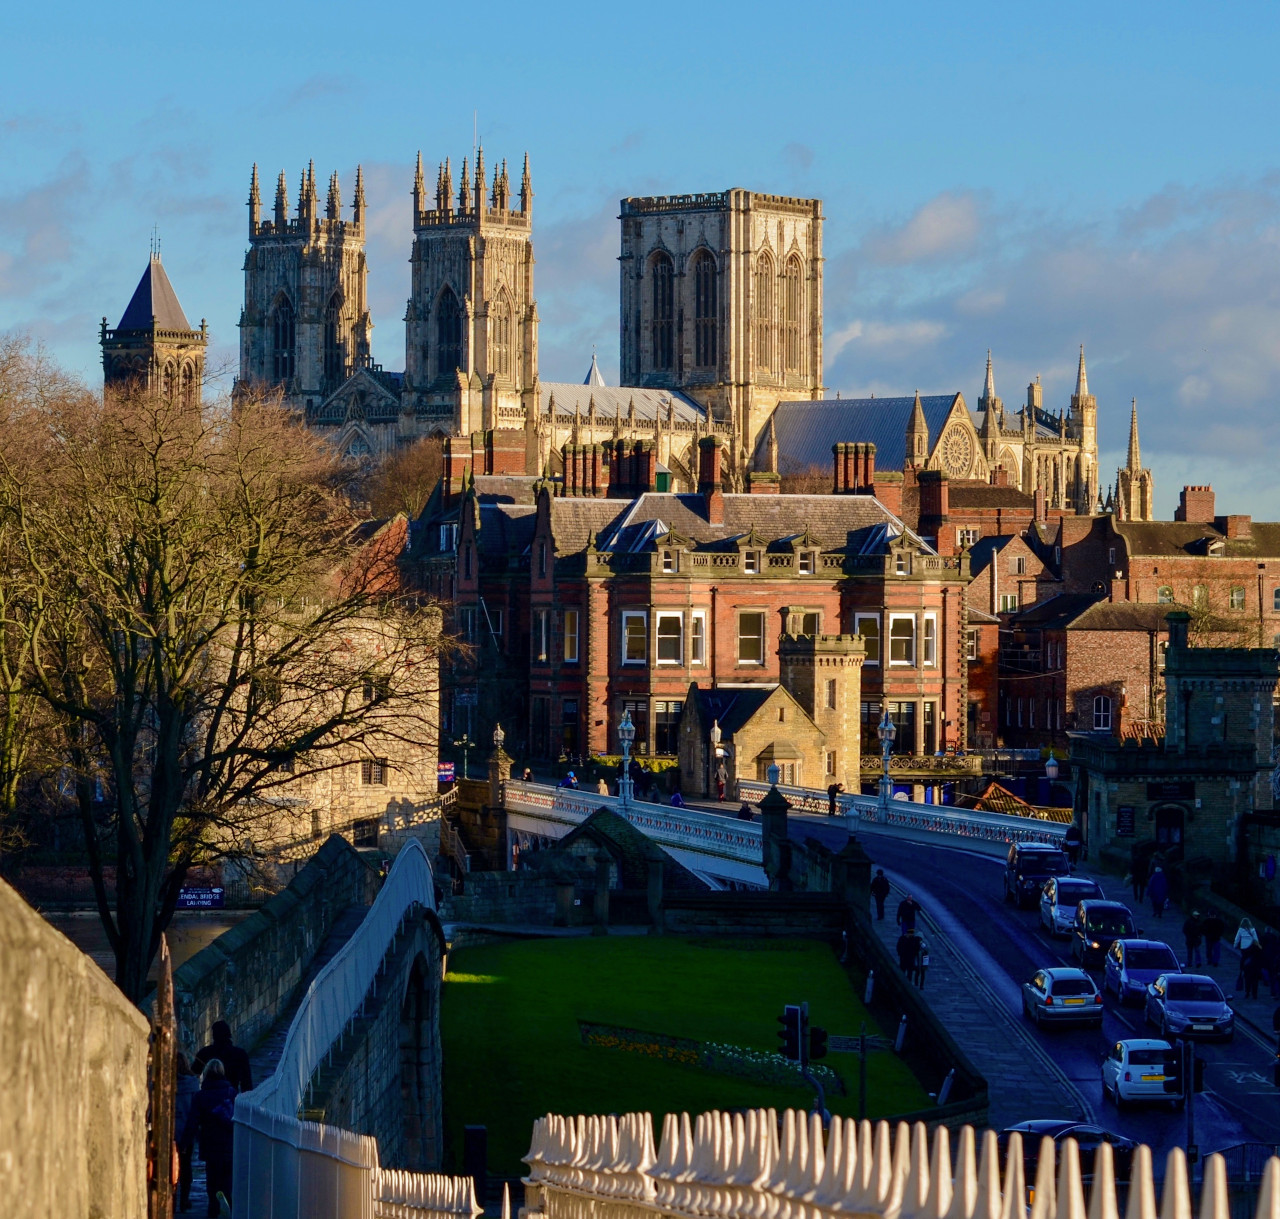 York Minster. Discover all the York points of interest from this article. #york #uk #europe #england, #travel